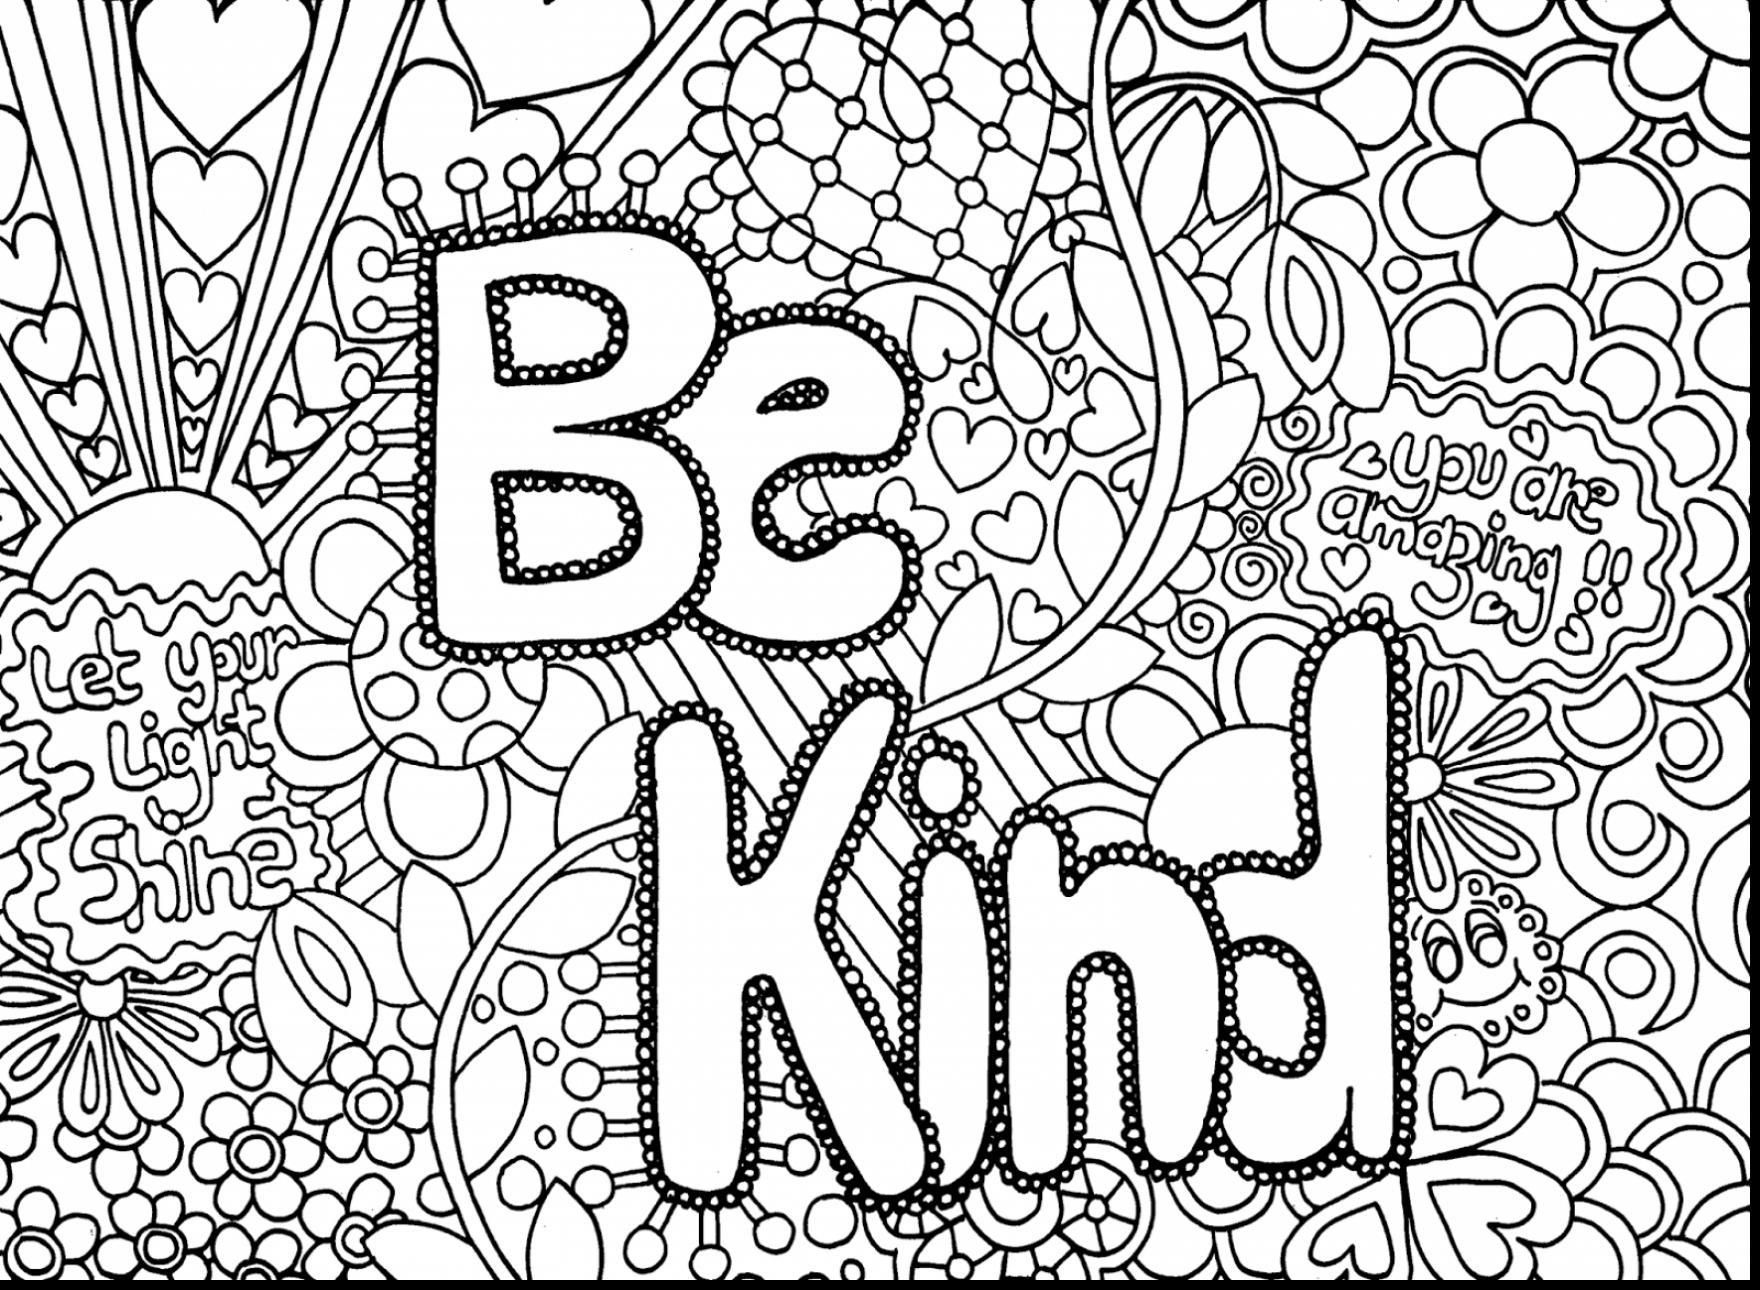 15 Coloring Page For Adults Pdf  Coloring pages for teenagers